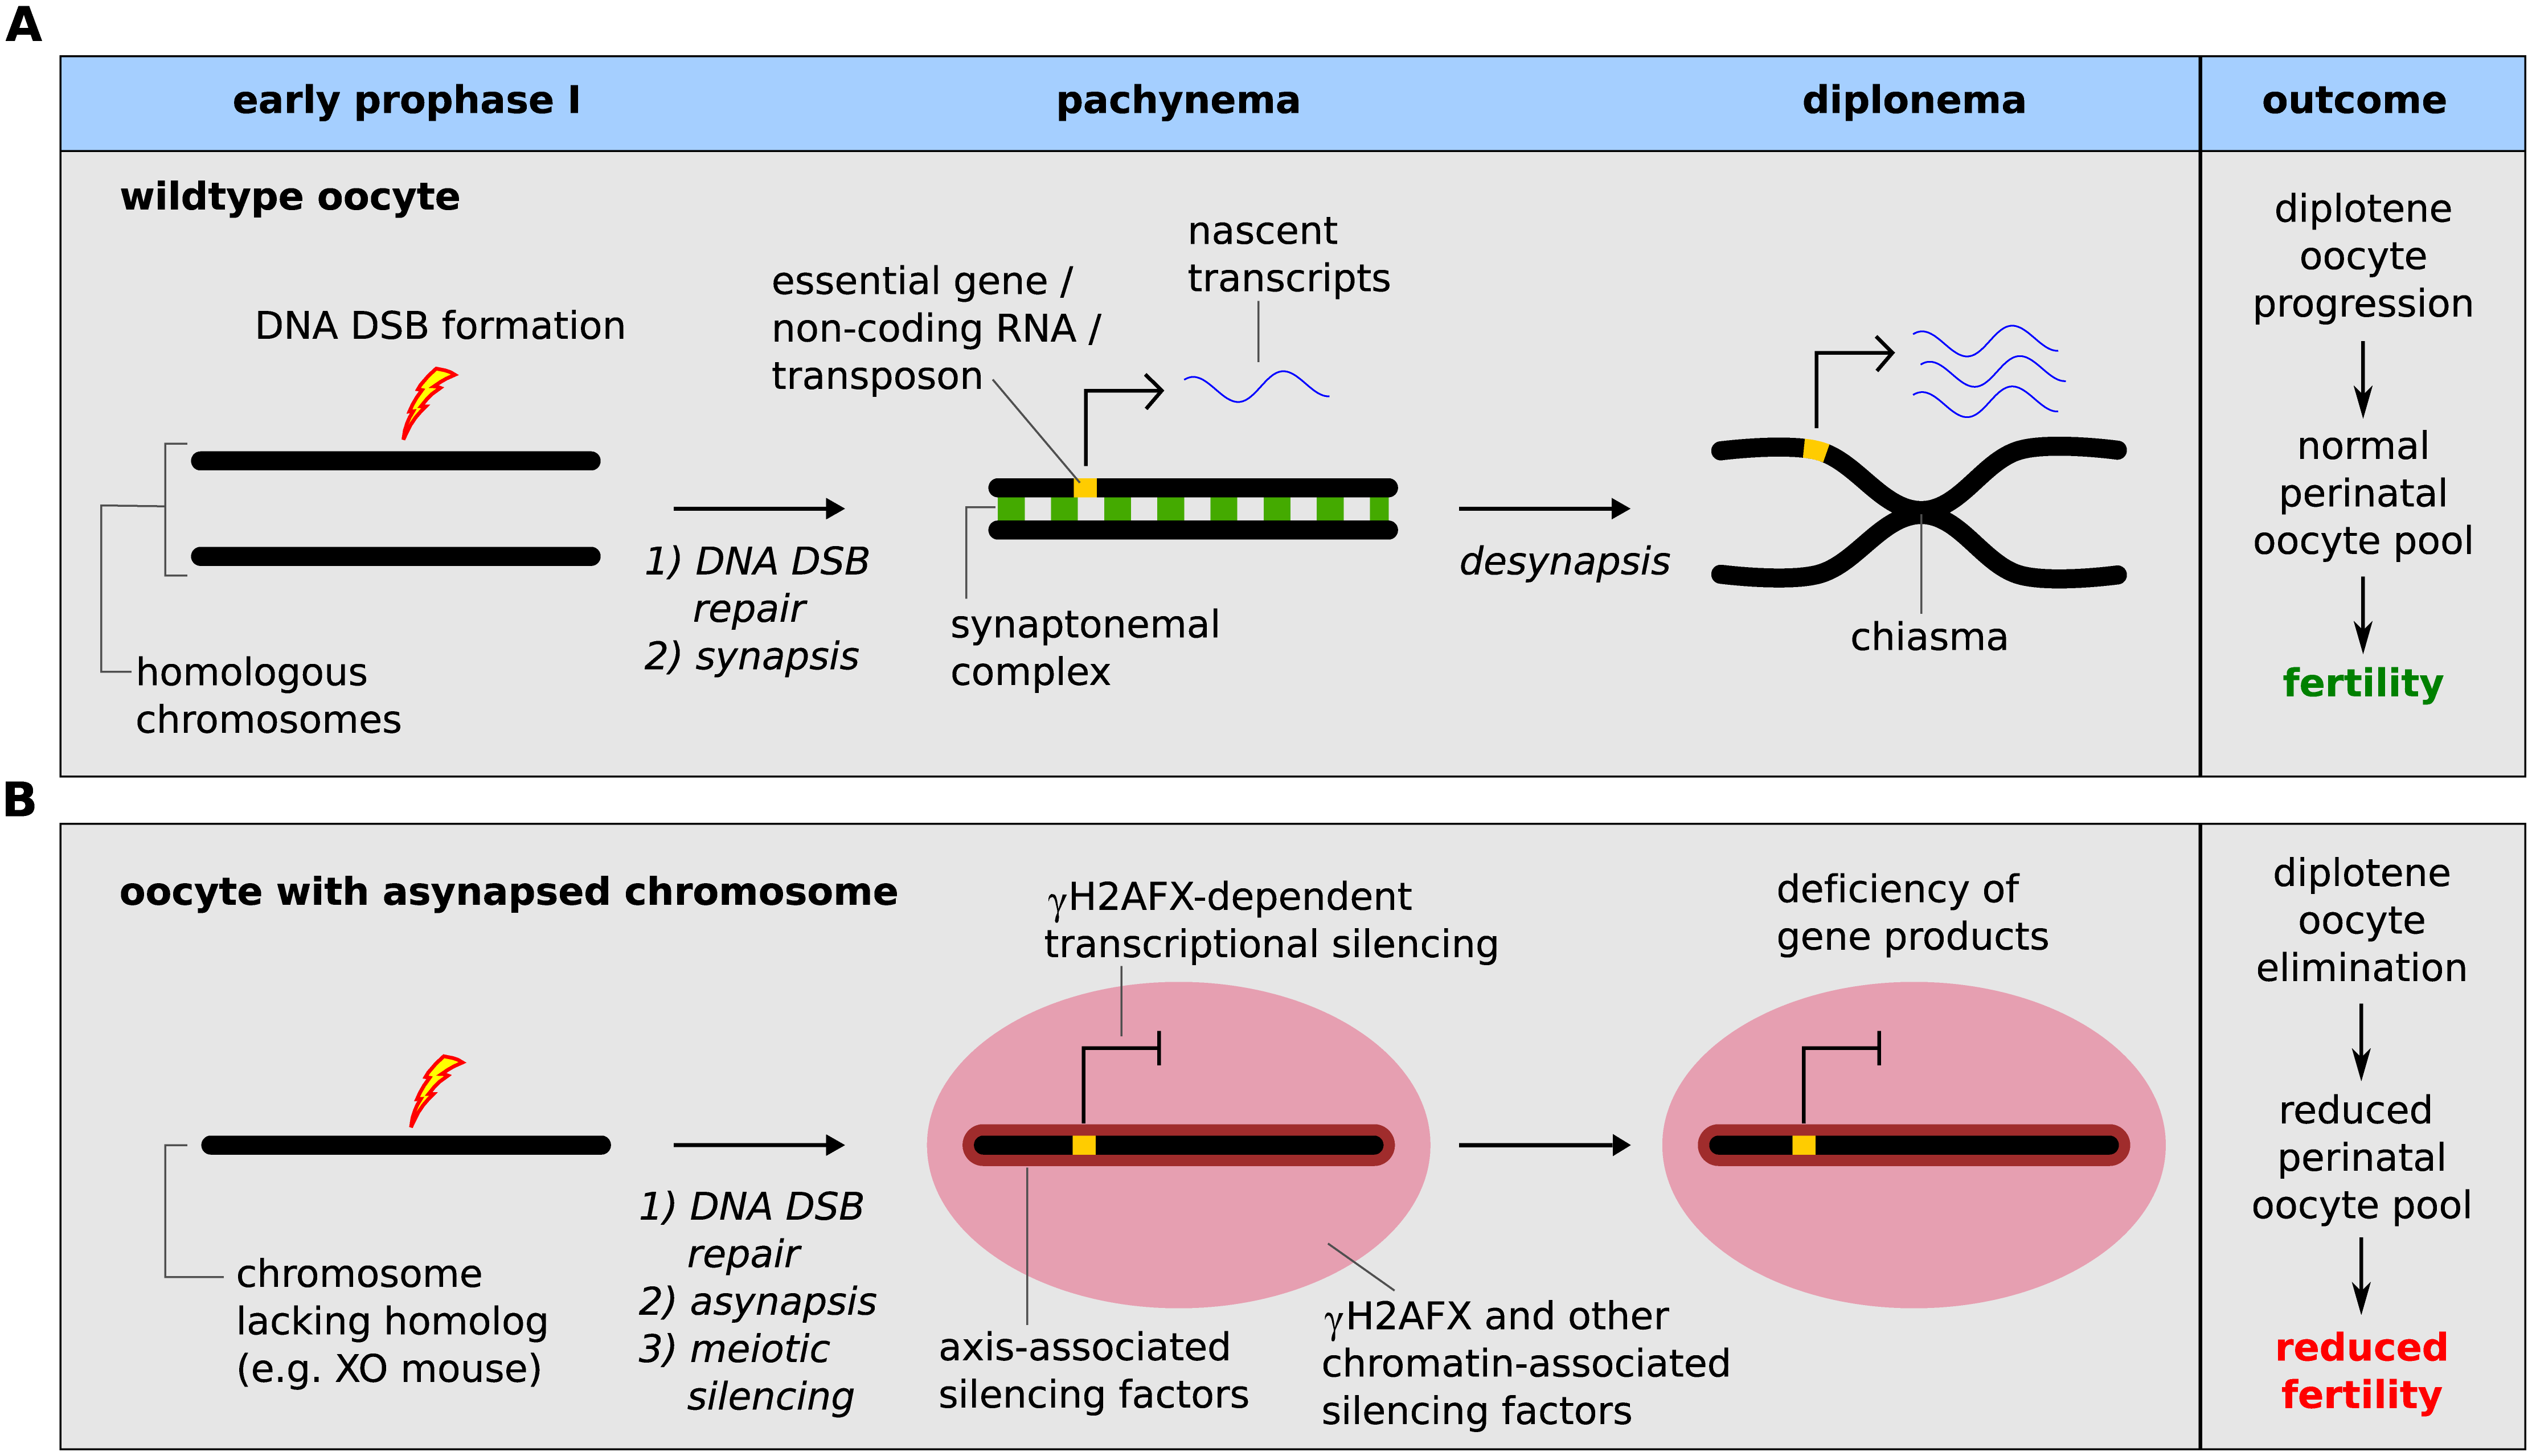 Meiotic silencing model of prophase I oocyte elimination.